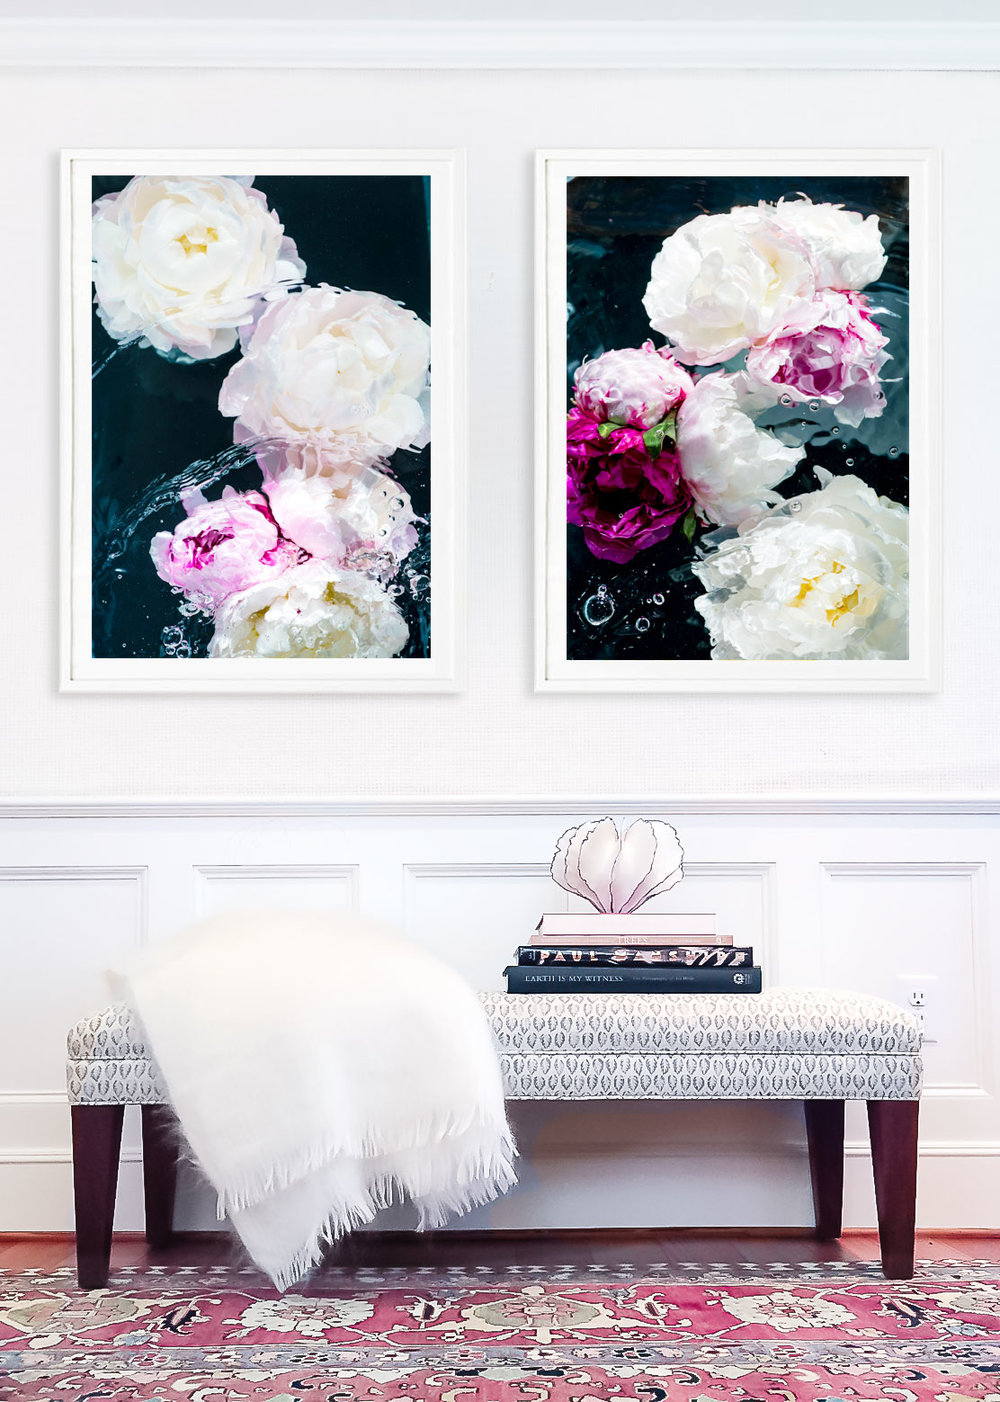 Valentine Diptych by Jessica Kenyon Studio, shown in Framebridge